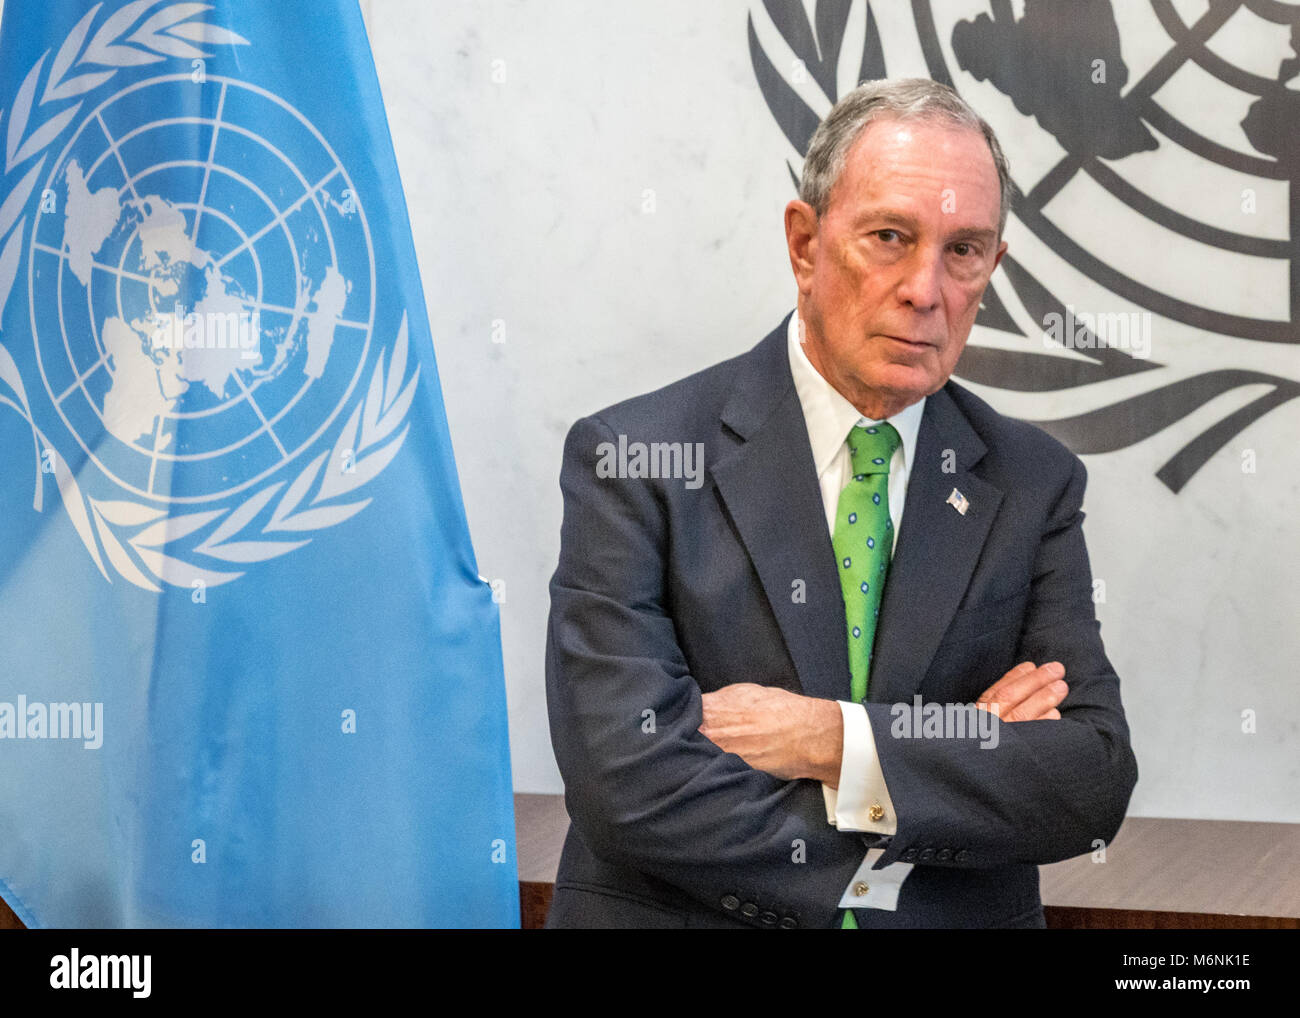 New York, USA, 5 Mar 2018. Former New York City Mayor Michael Bloomberg was re-appointed as UN Special Envoy for Stock Photo